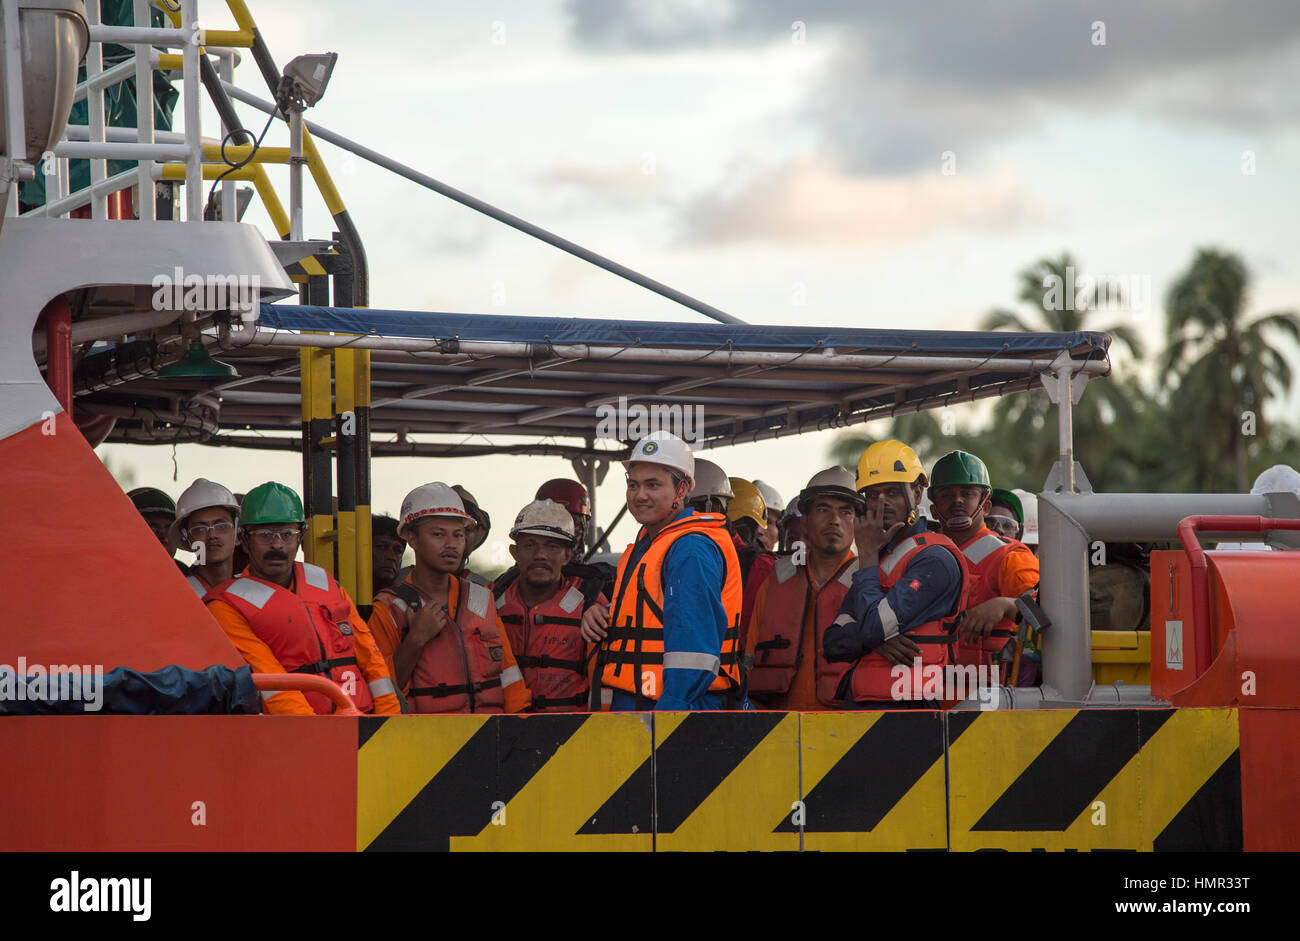 Oil workers in orange overalls are seen transfering from the